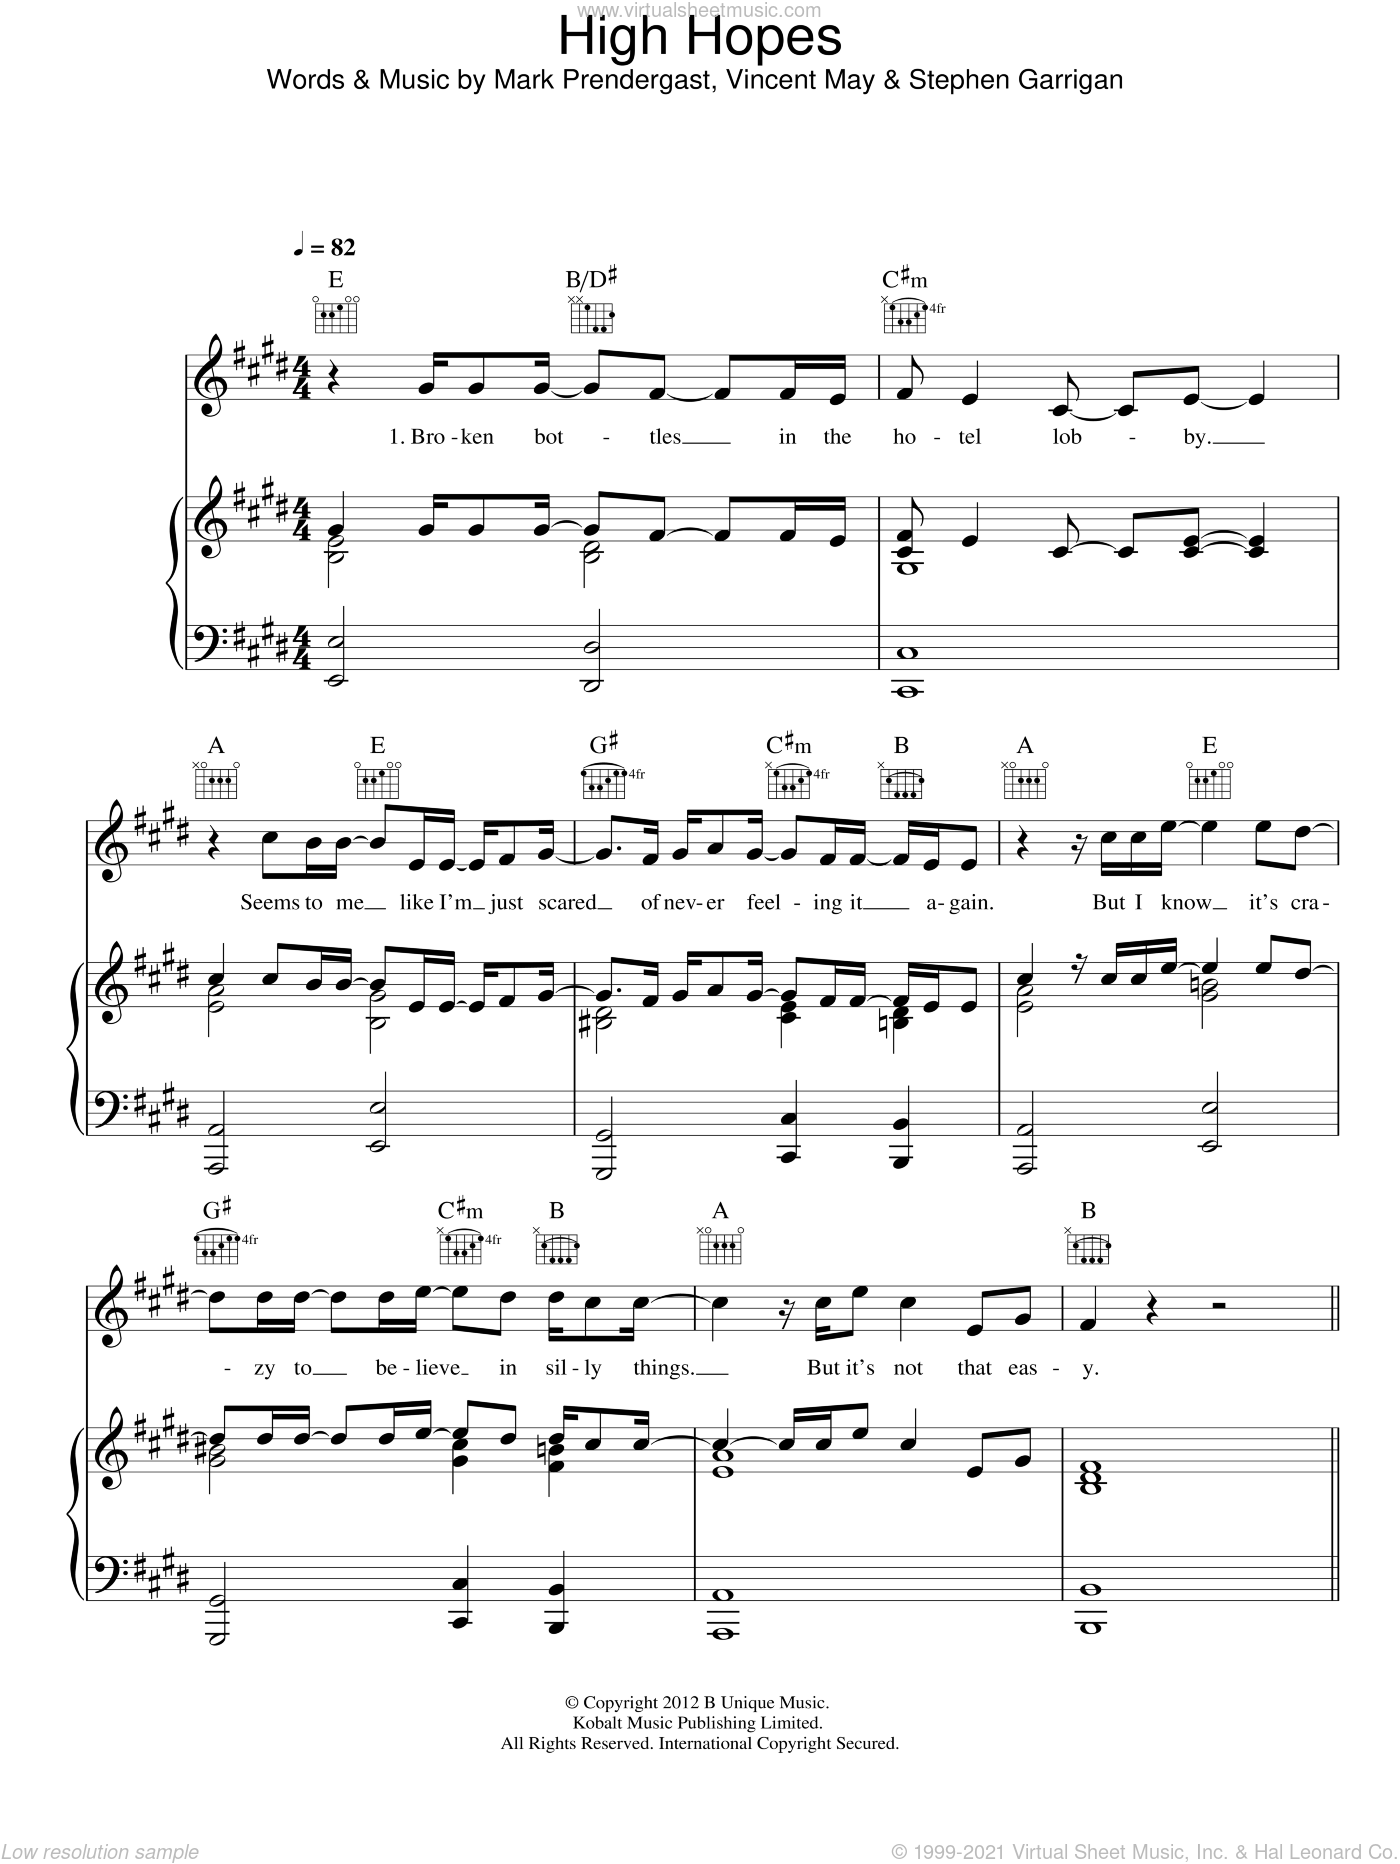 High Hopes sheet music for voice, piano or guitar by Kodaline, Mark Prendergast, Stephen Garrigan and Vincent May, intermediate skill level